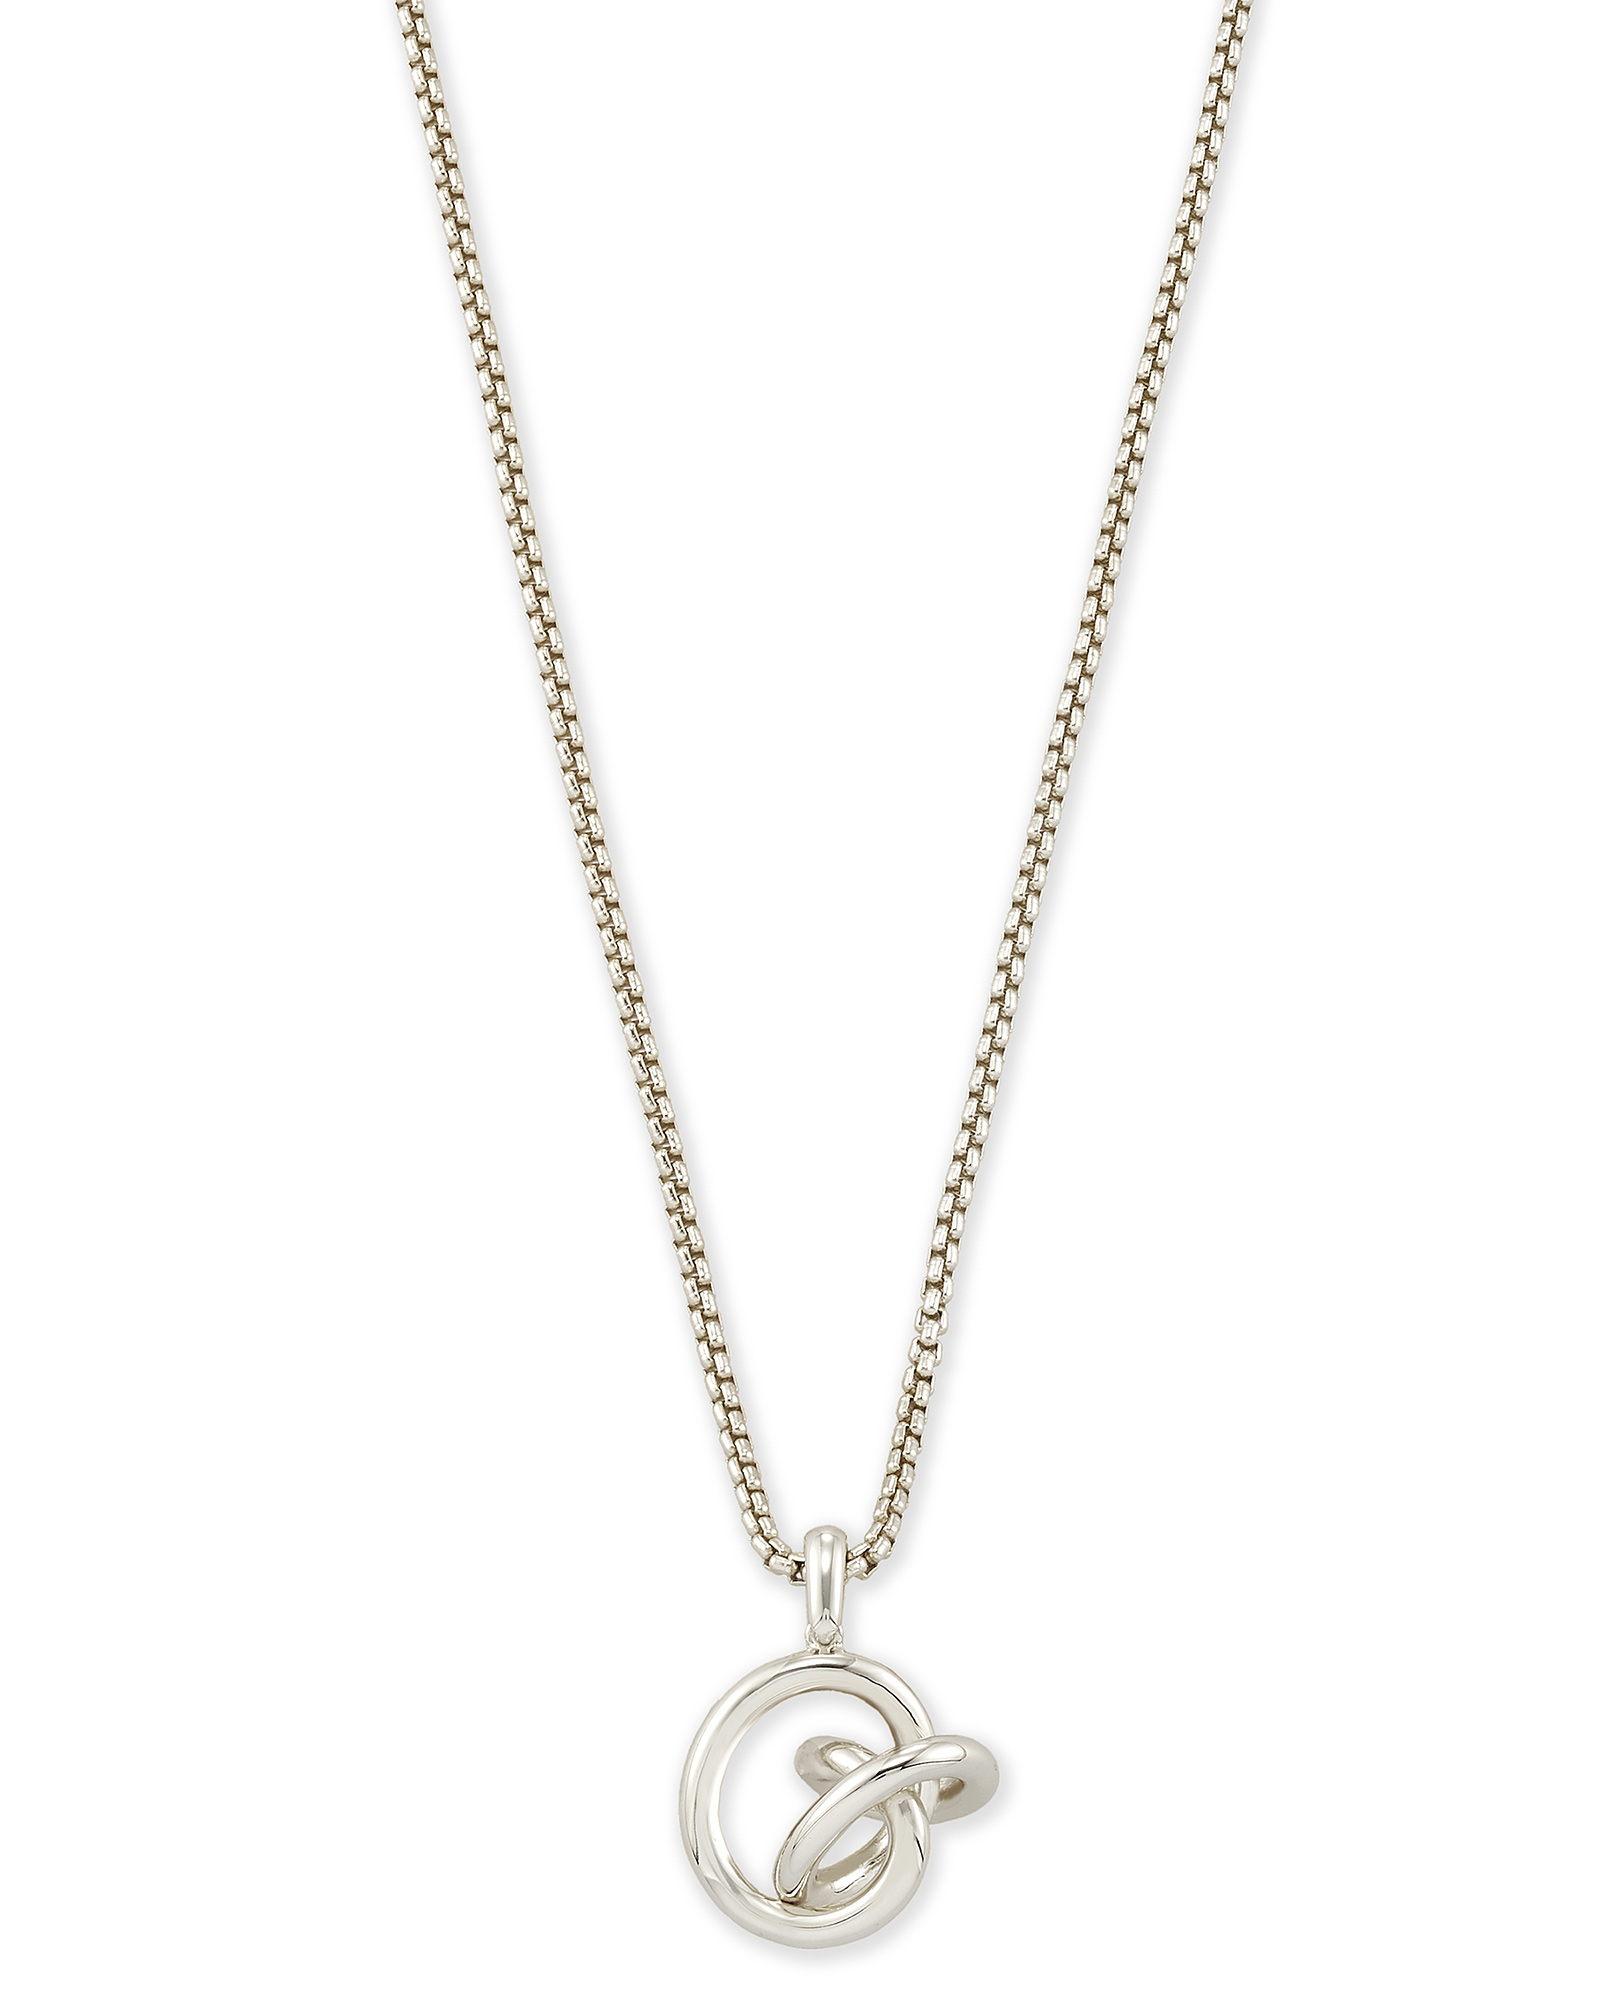 Presleigh Love Knot Pendant Necklace in Bright Silver